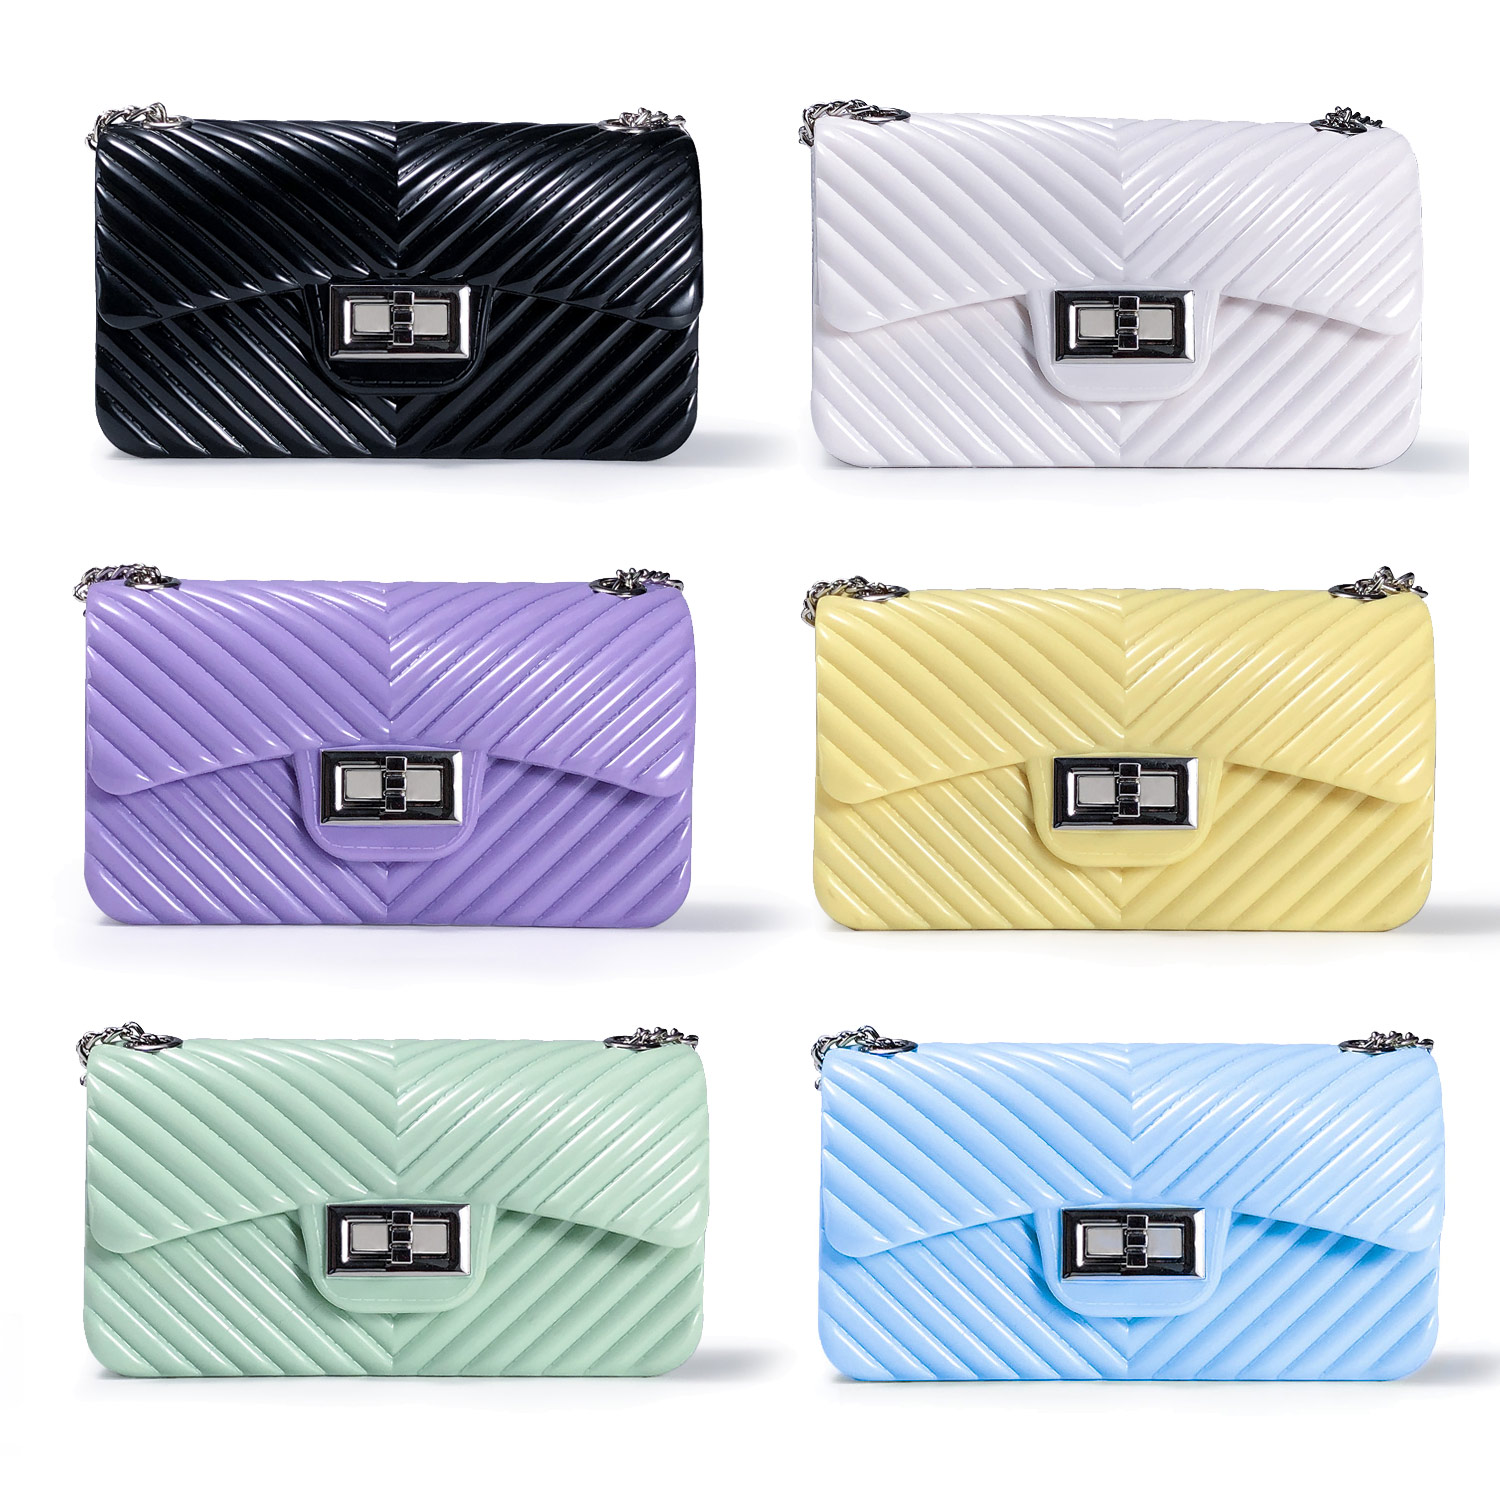 2020 New arrivals hand bags jelly purses women purses and handbags